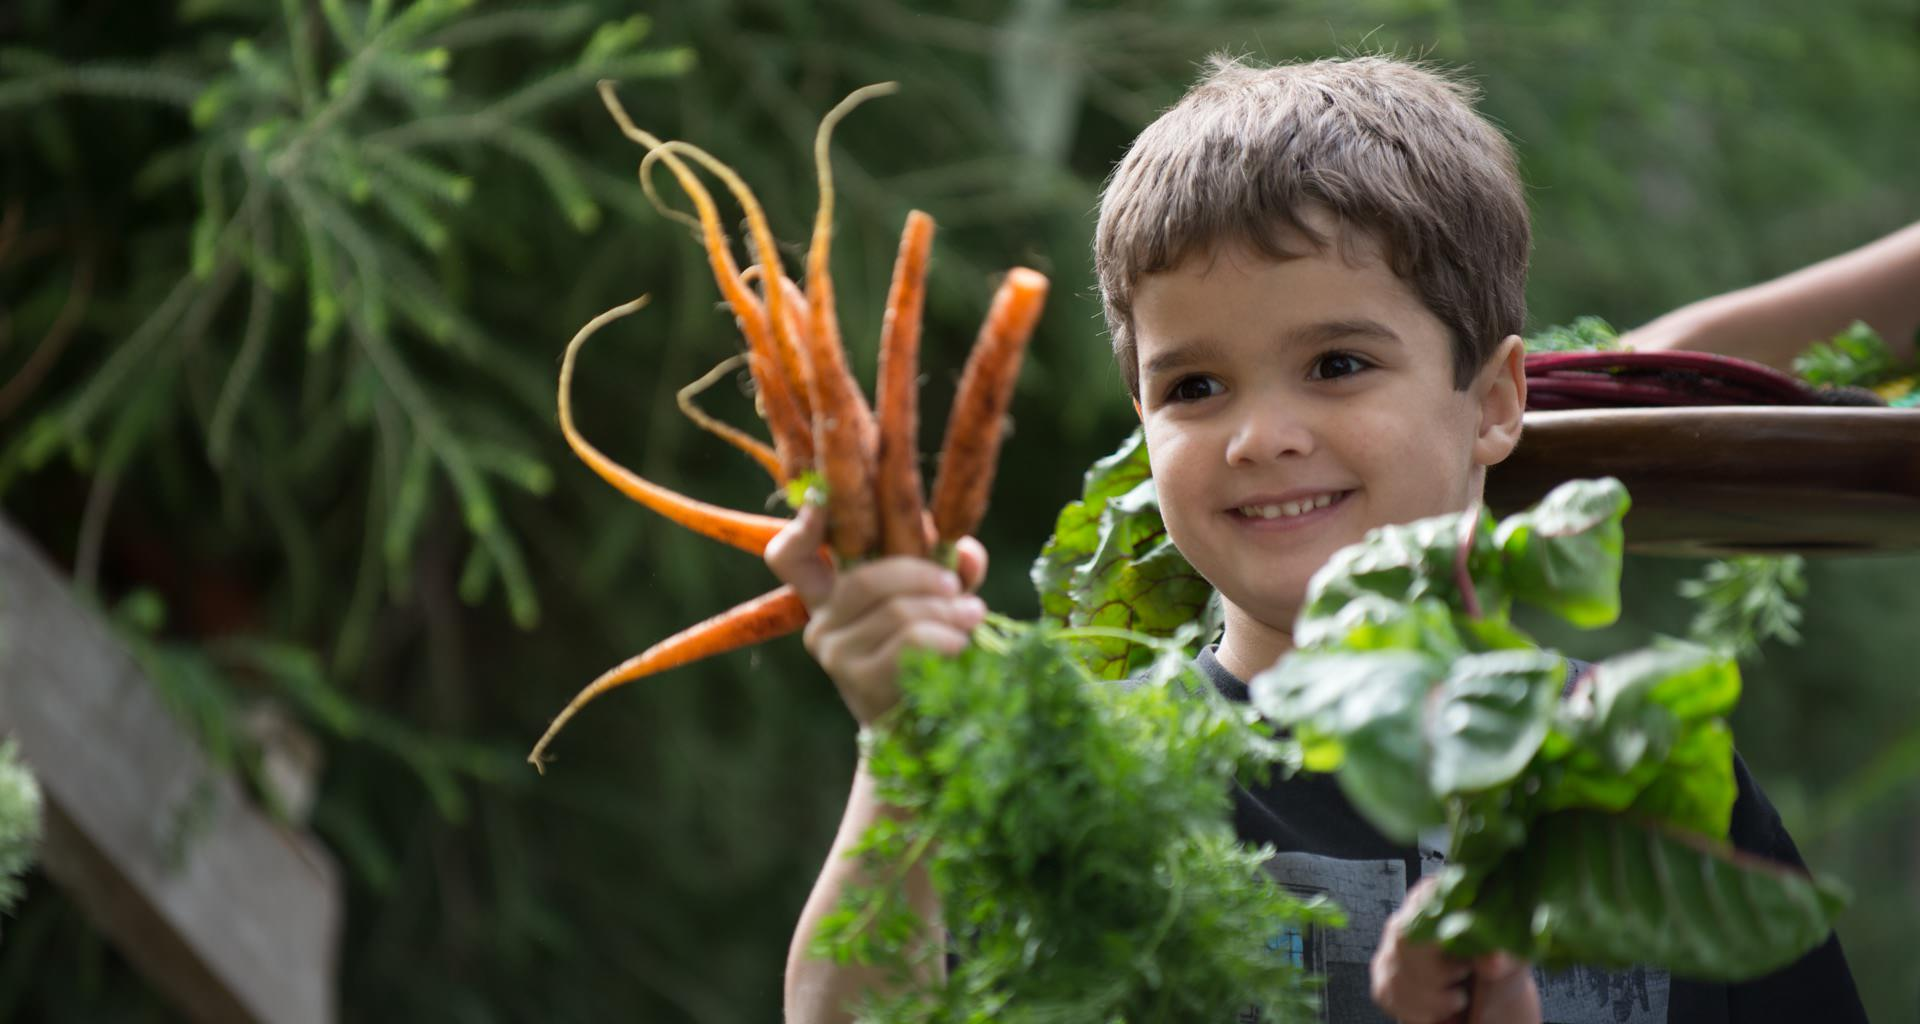 Young Boy Holding Homegrown Carrots